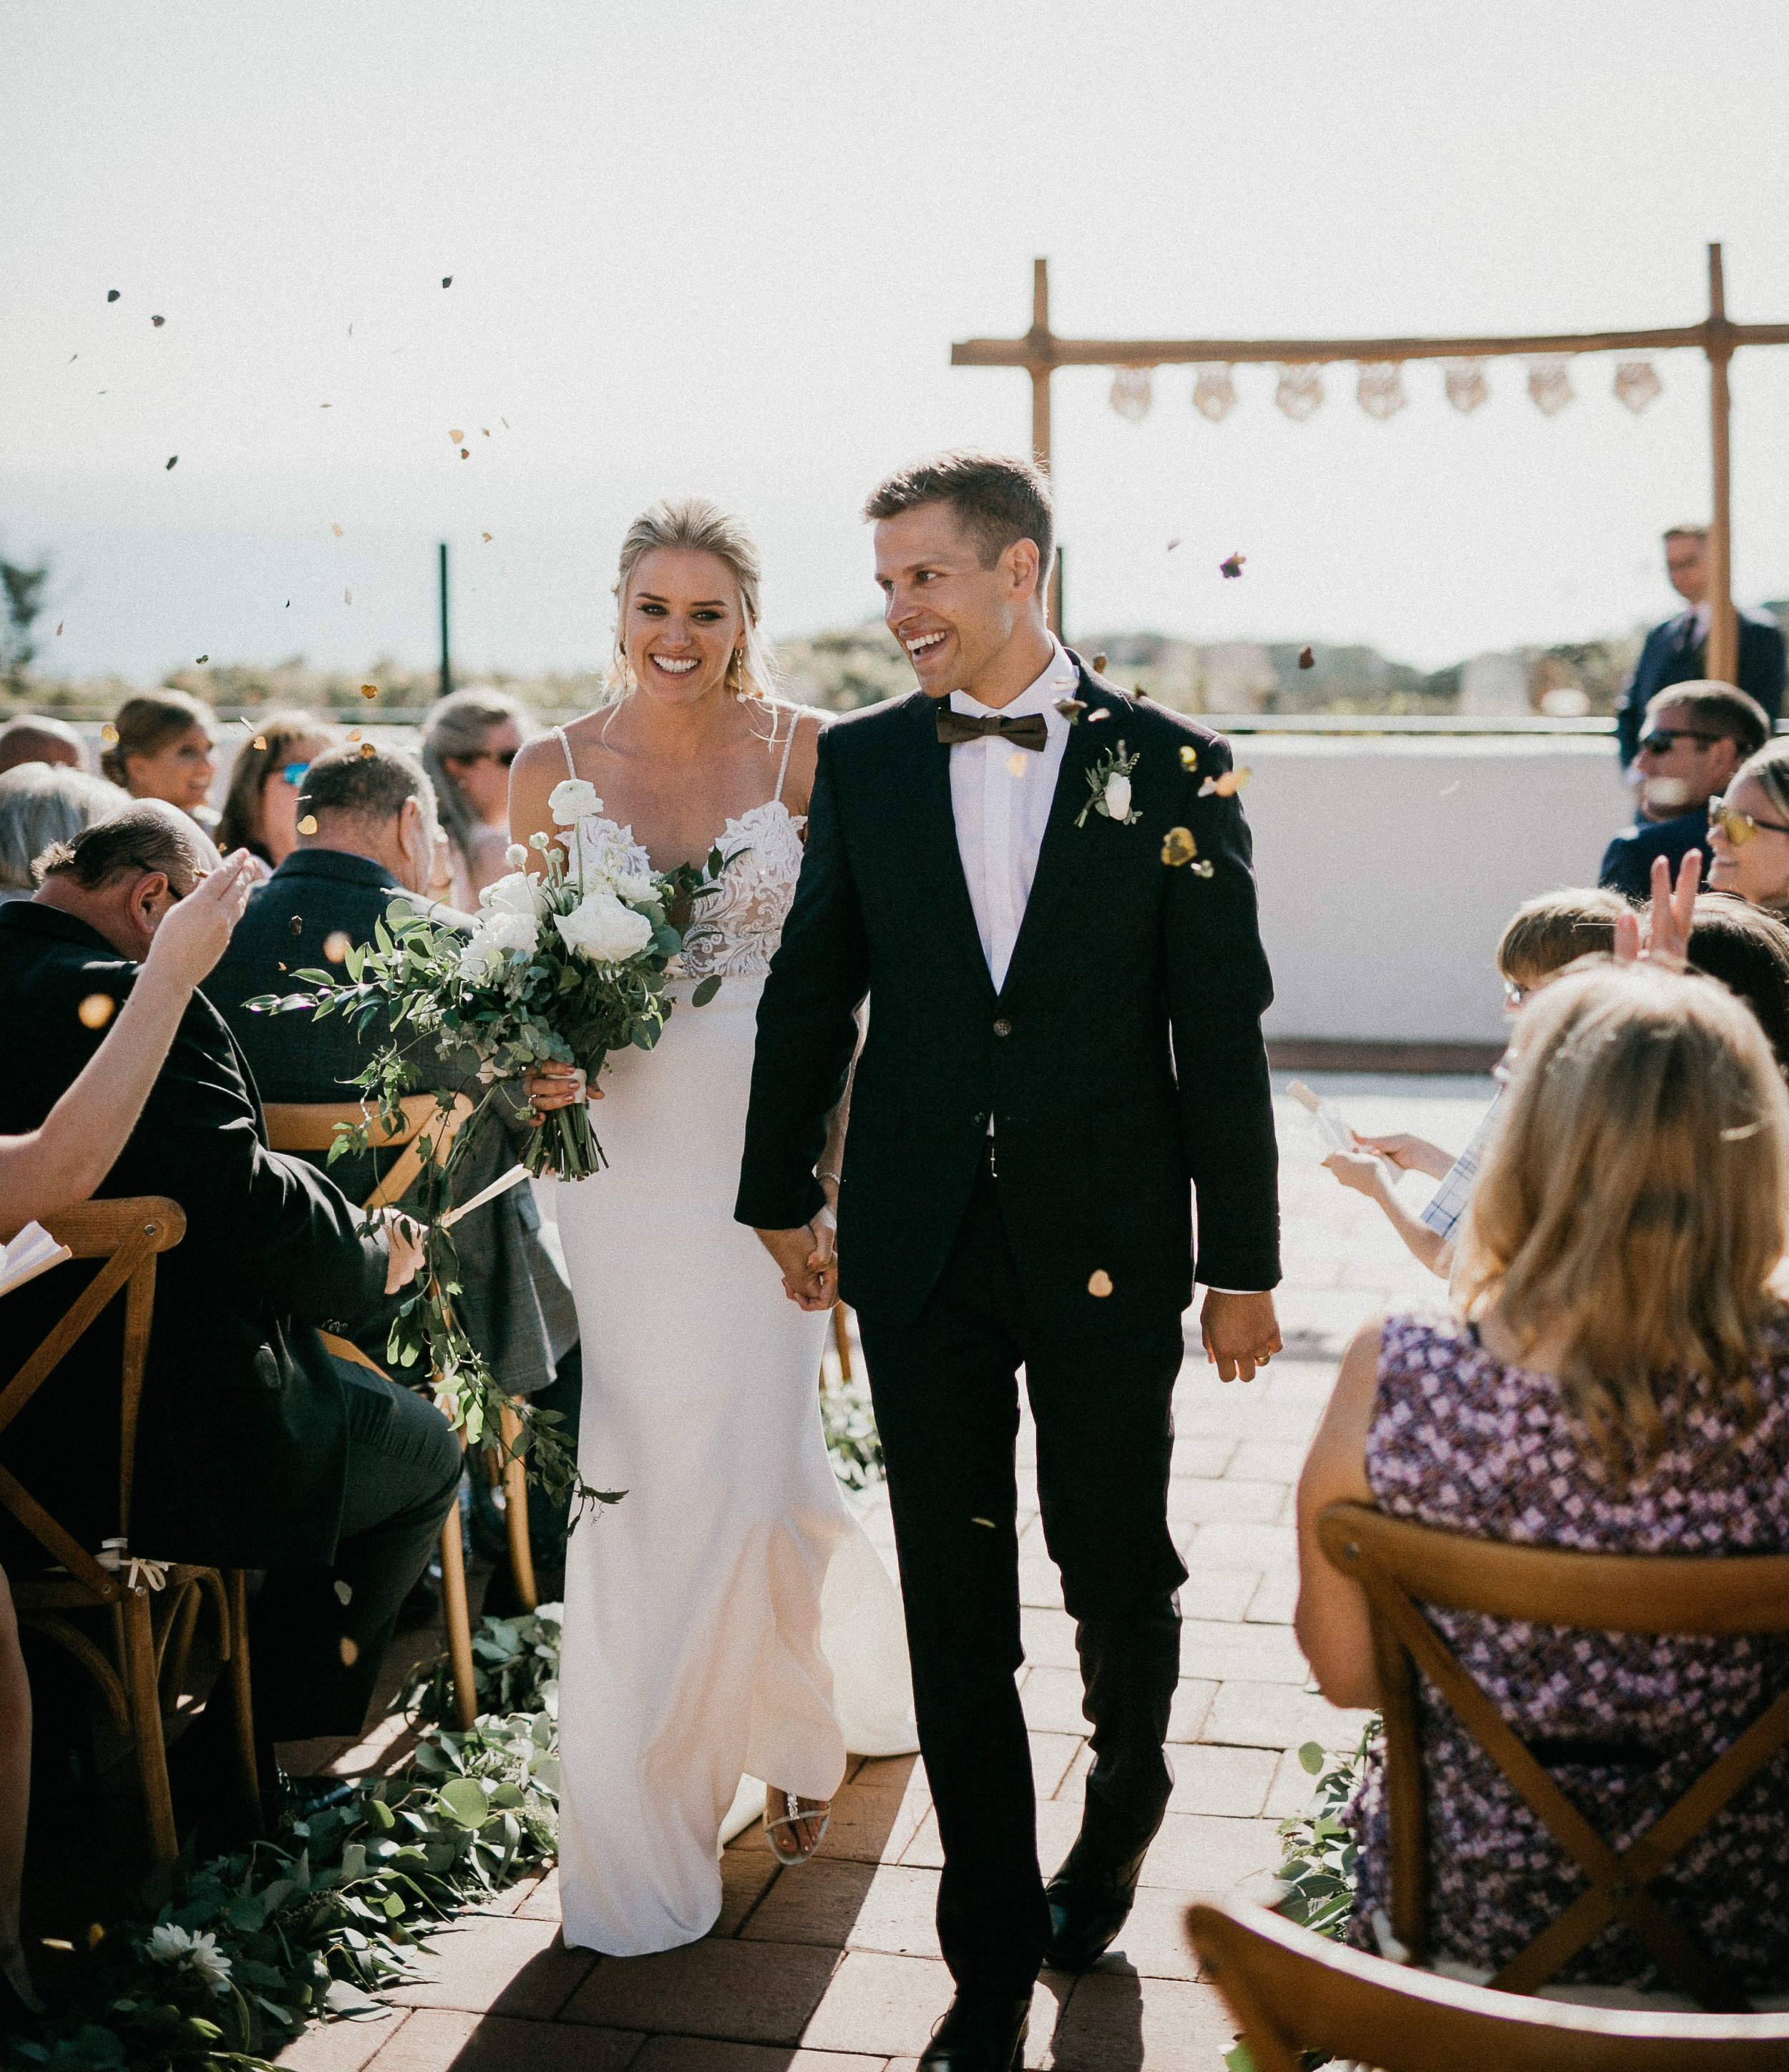 Forever Package - 9 hours of photography coverageTwo photographersComplimentary engagement sessionPremium flush-mount albumFree timeline consultFull reproduction rightsDelivery via private gallery$3450.00Include Storytellers videography for $2250.00!